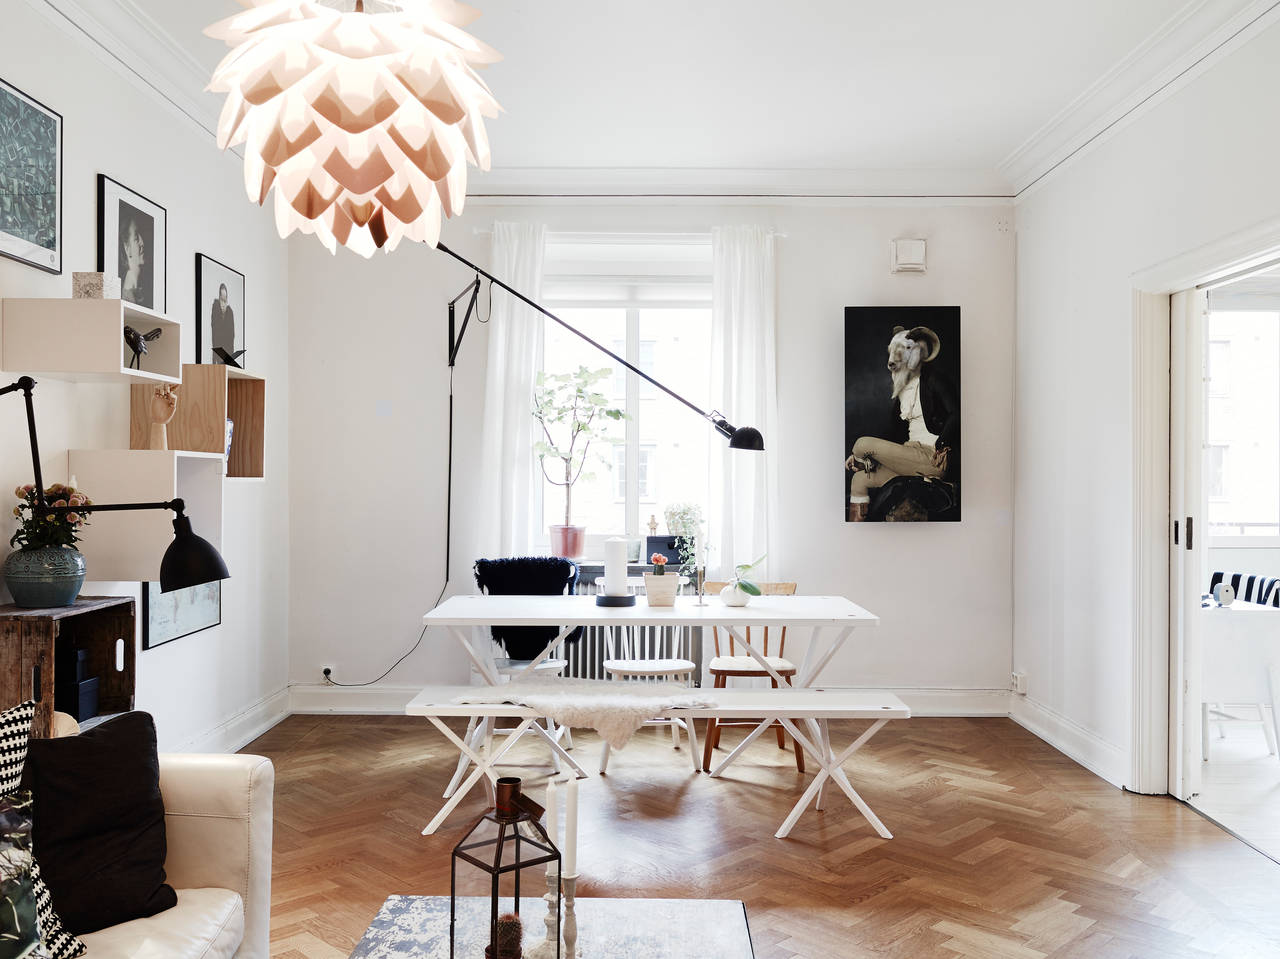 HOME TOUR UN ORIGINAL DANS LE STYLE SCANDINAVE